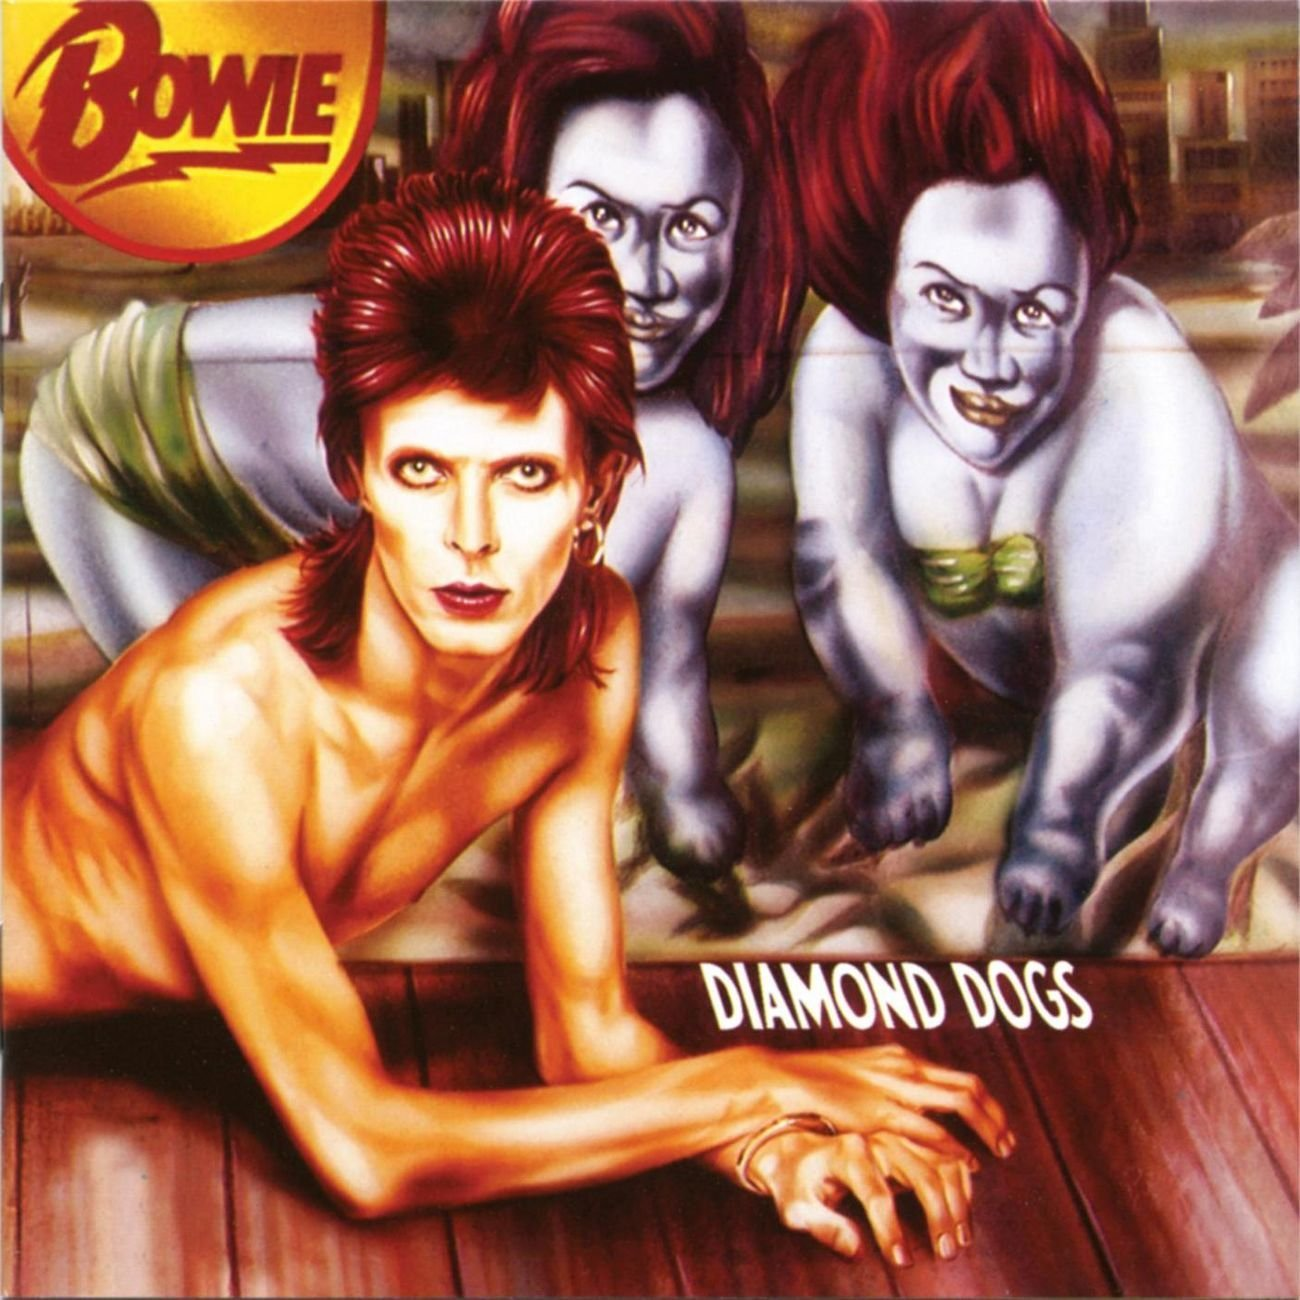 bowie diamond dogs CoS Readers Poll Results: Favorite David Bowie Albums